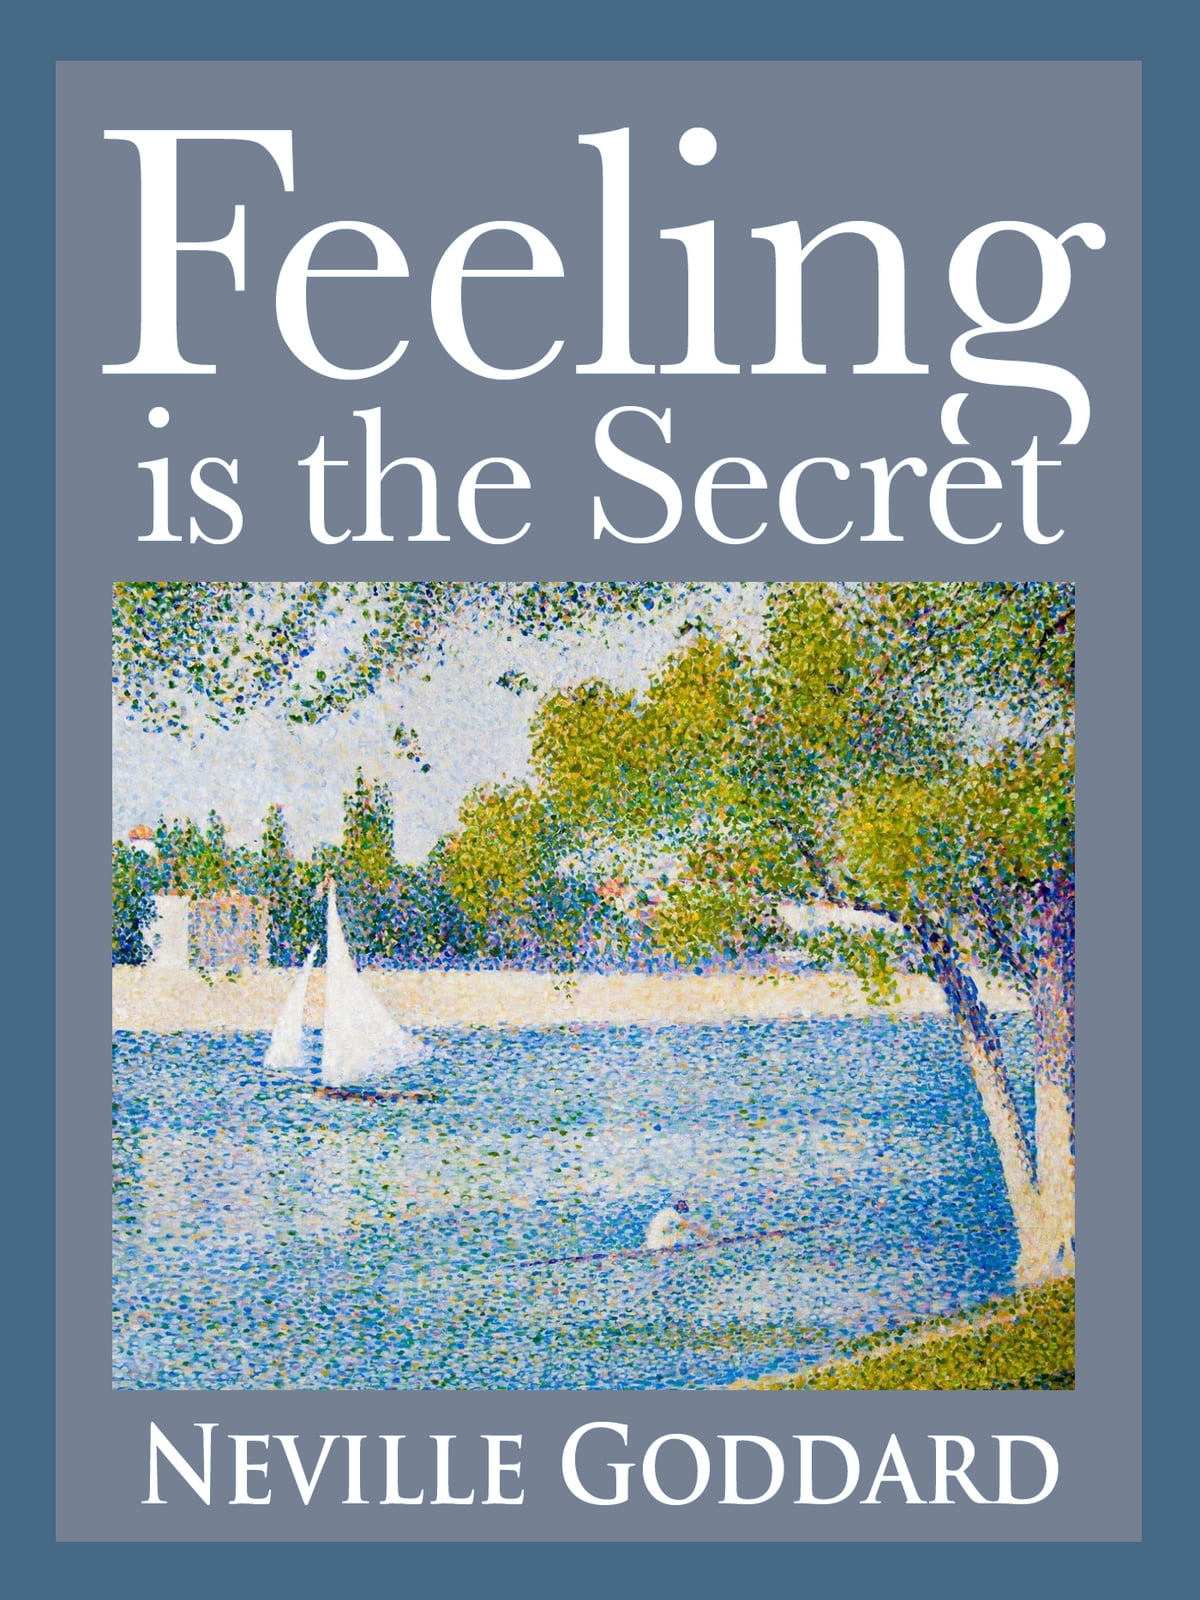 Neville Goddard Libros Feeling Is The Secret Ebooks By Neville Goddard Rakuten Kobo